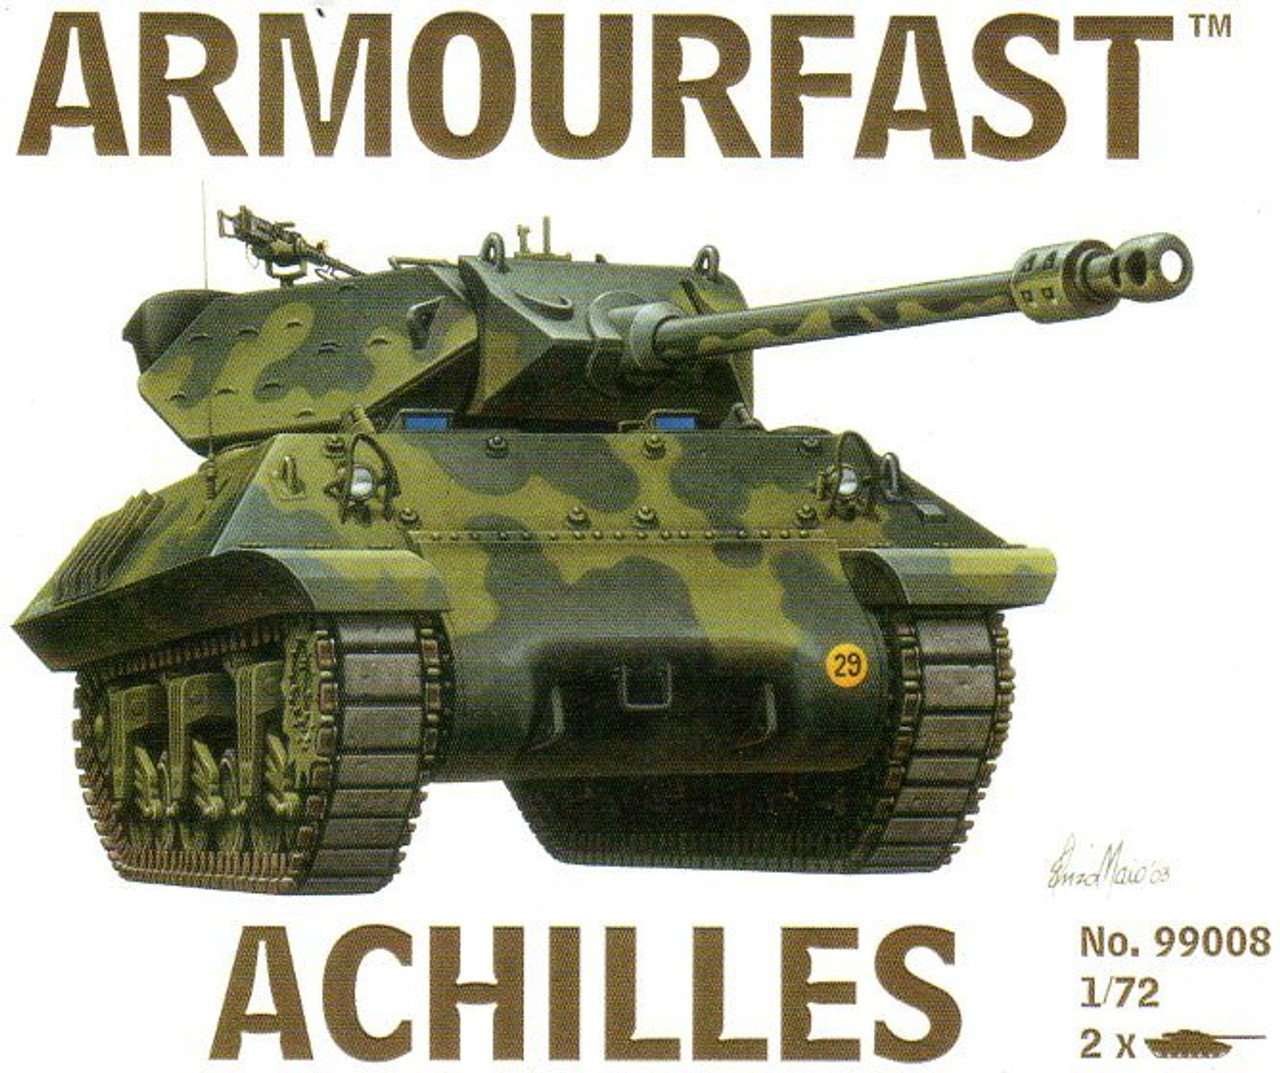 Armourfast 99008 Achilles 1:72 Scale Model Kit (AF99008)